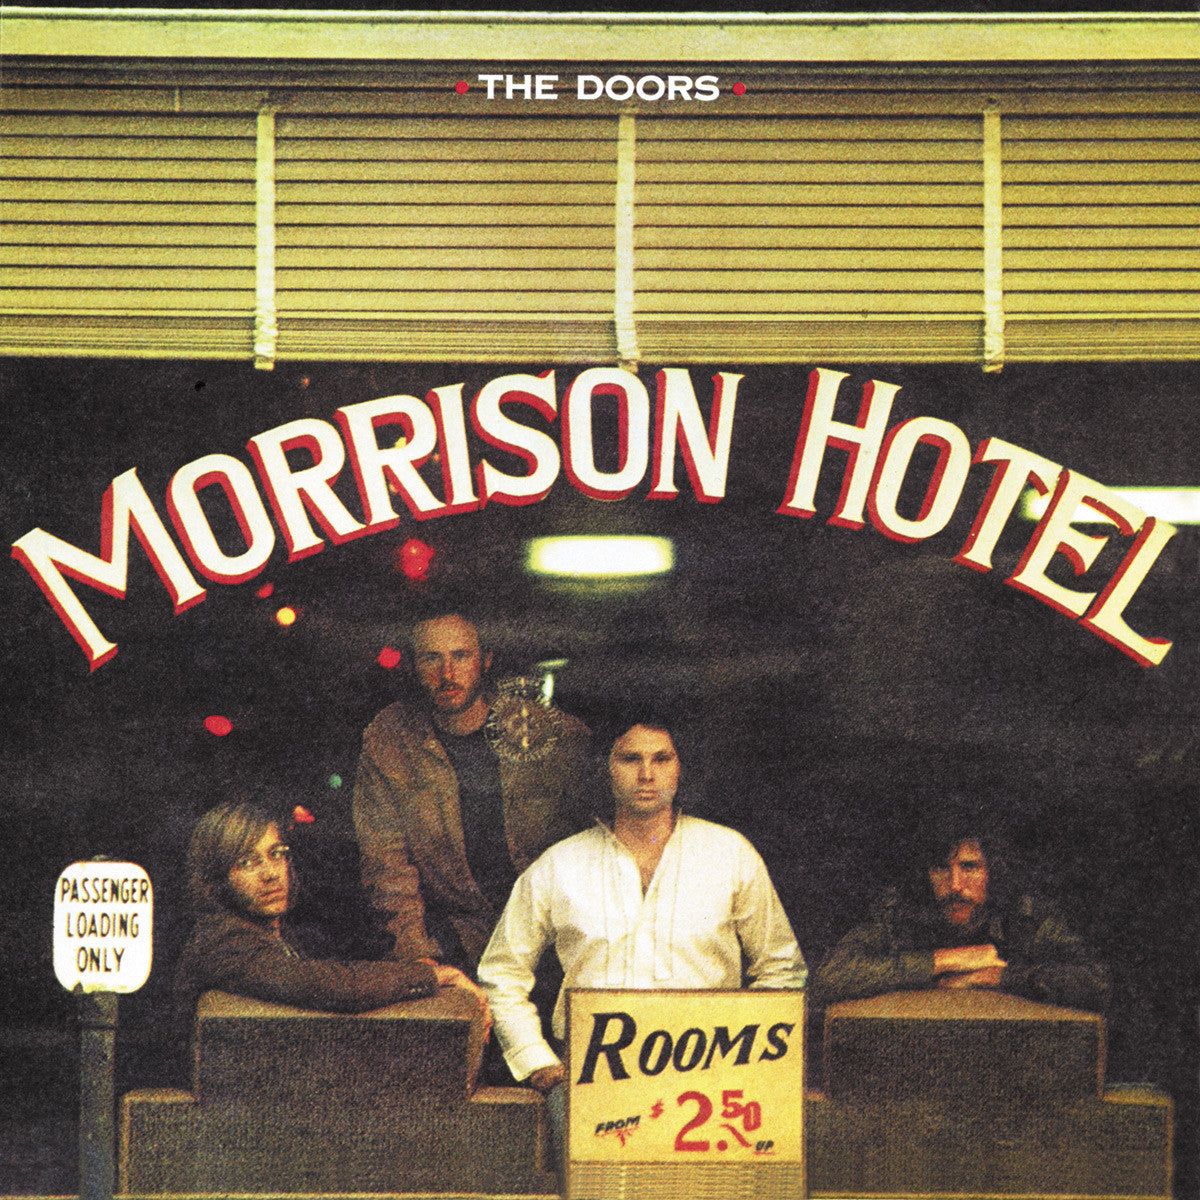 The Doors Morrison Hotel [CD]